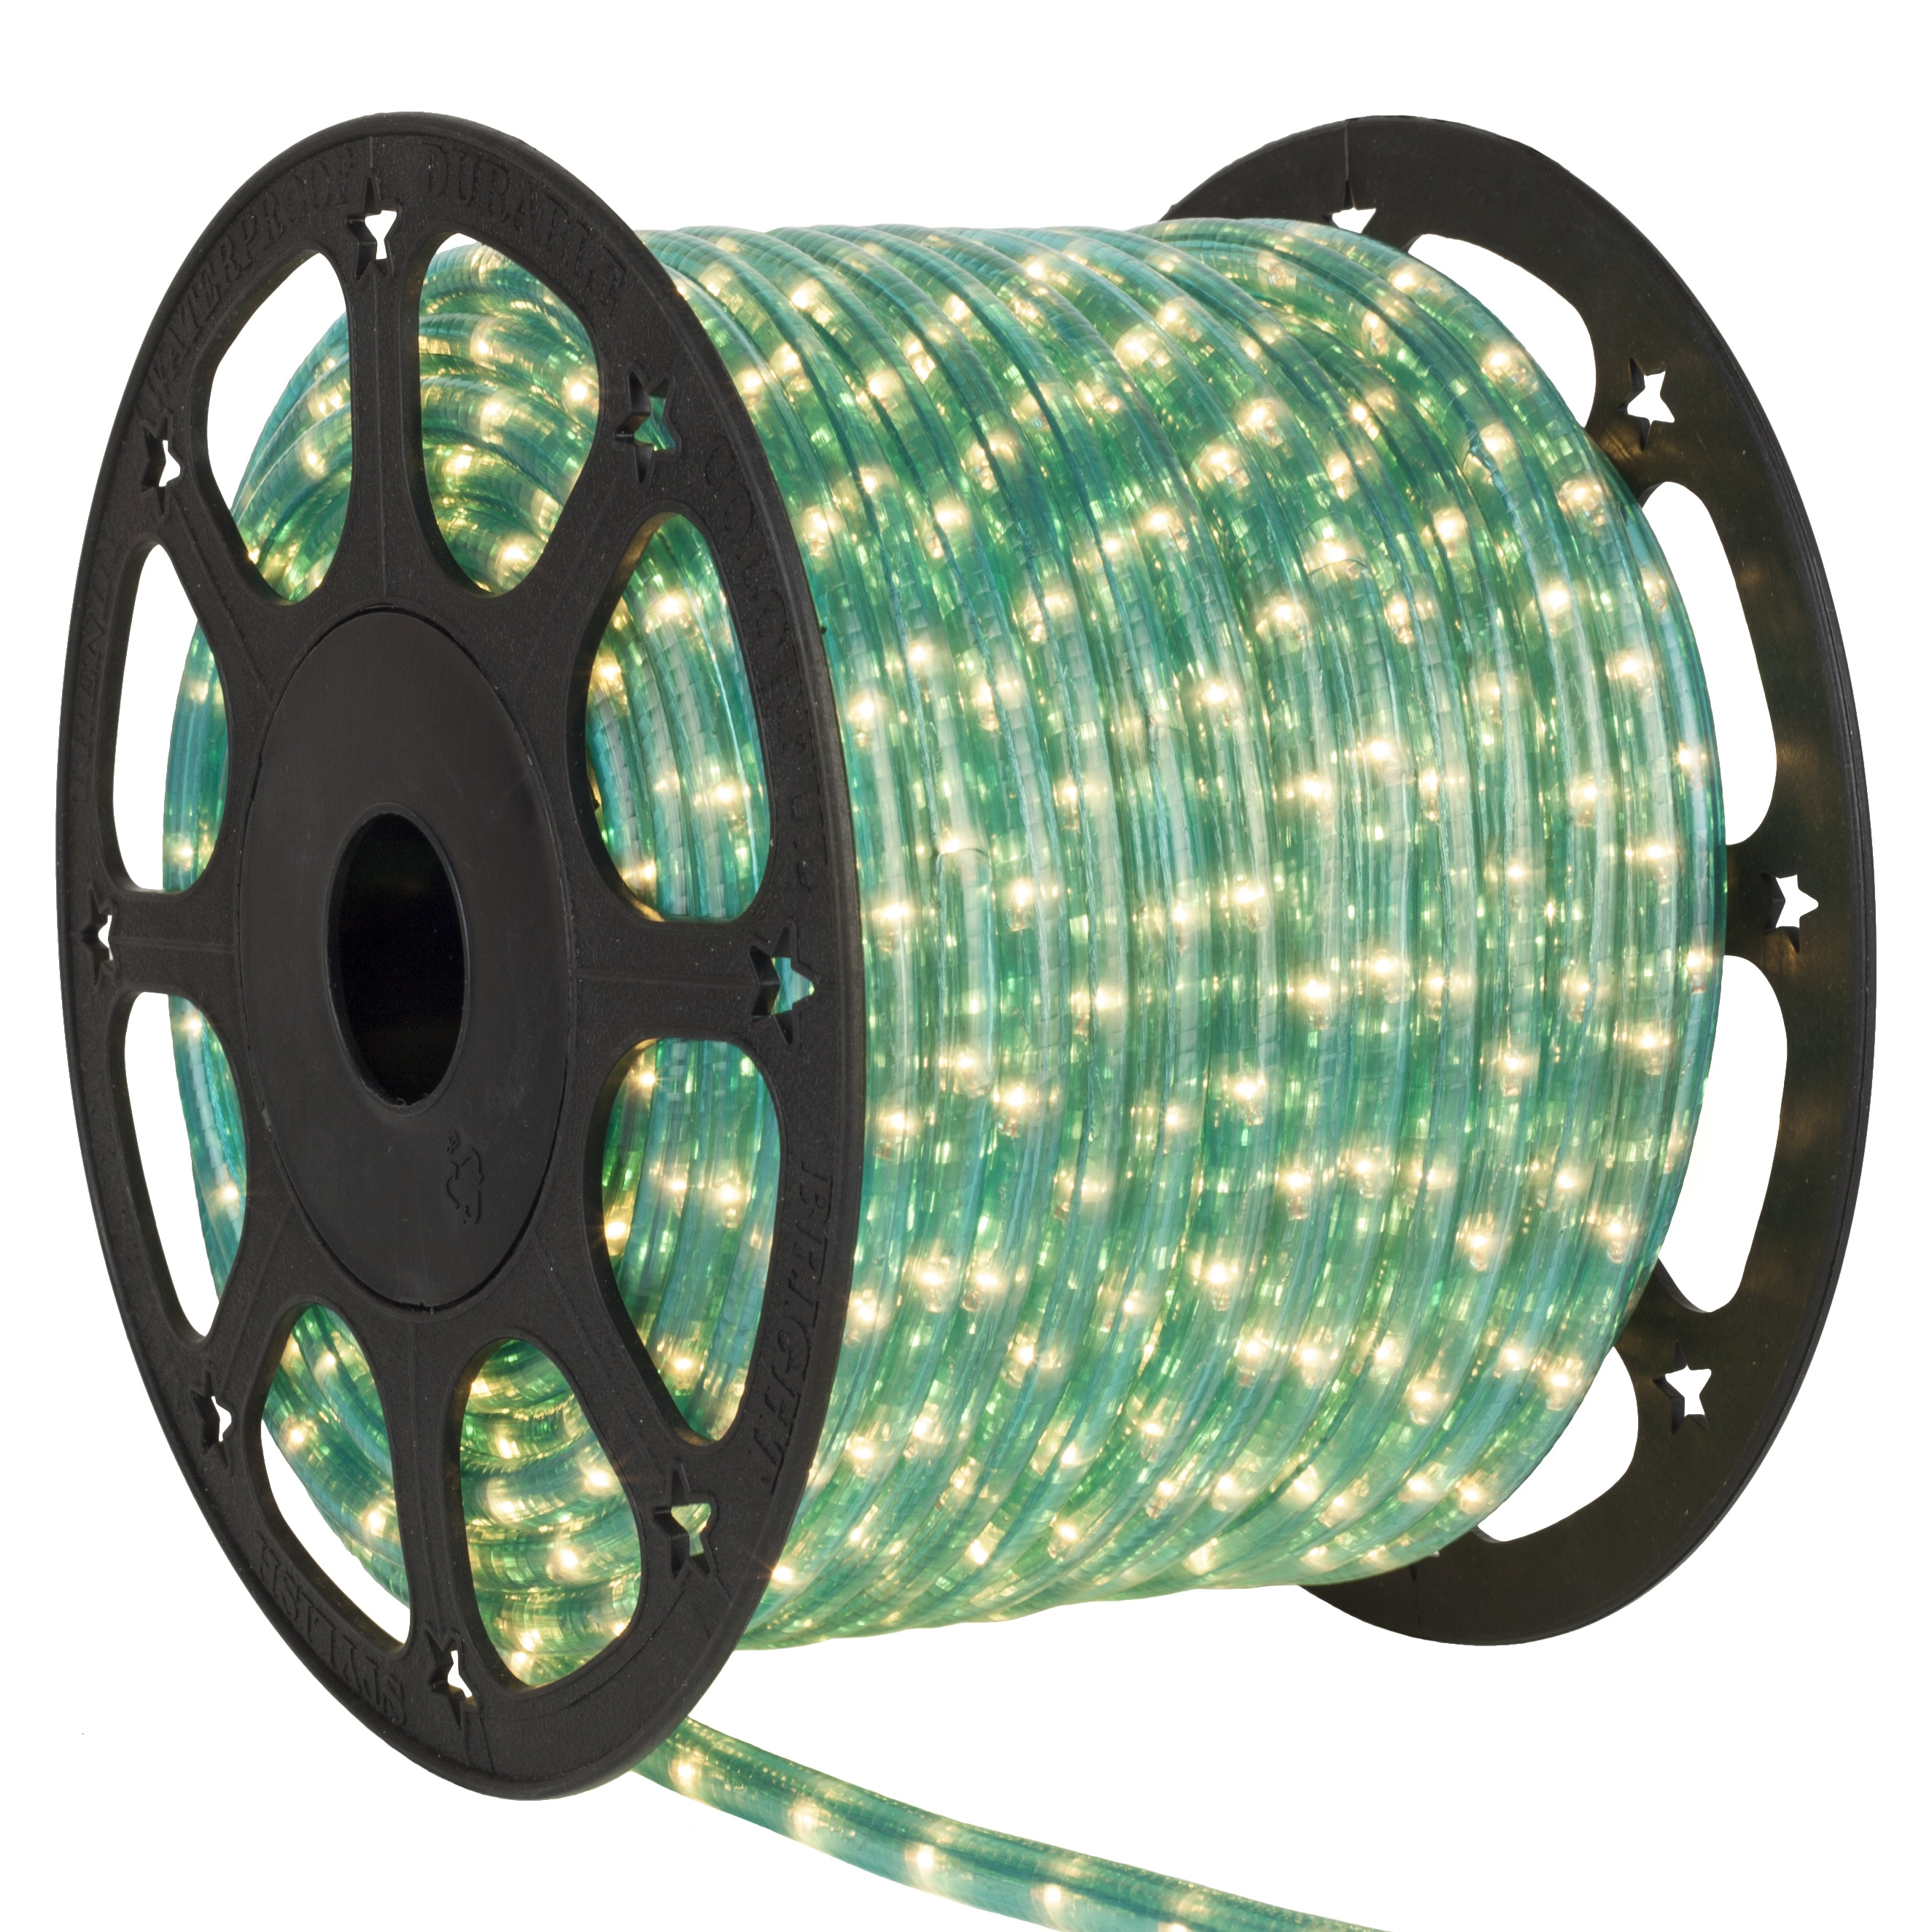 Aqua Blue Rope Light Spool